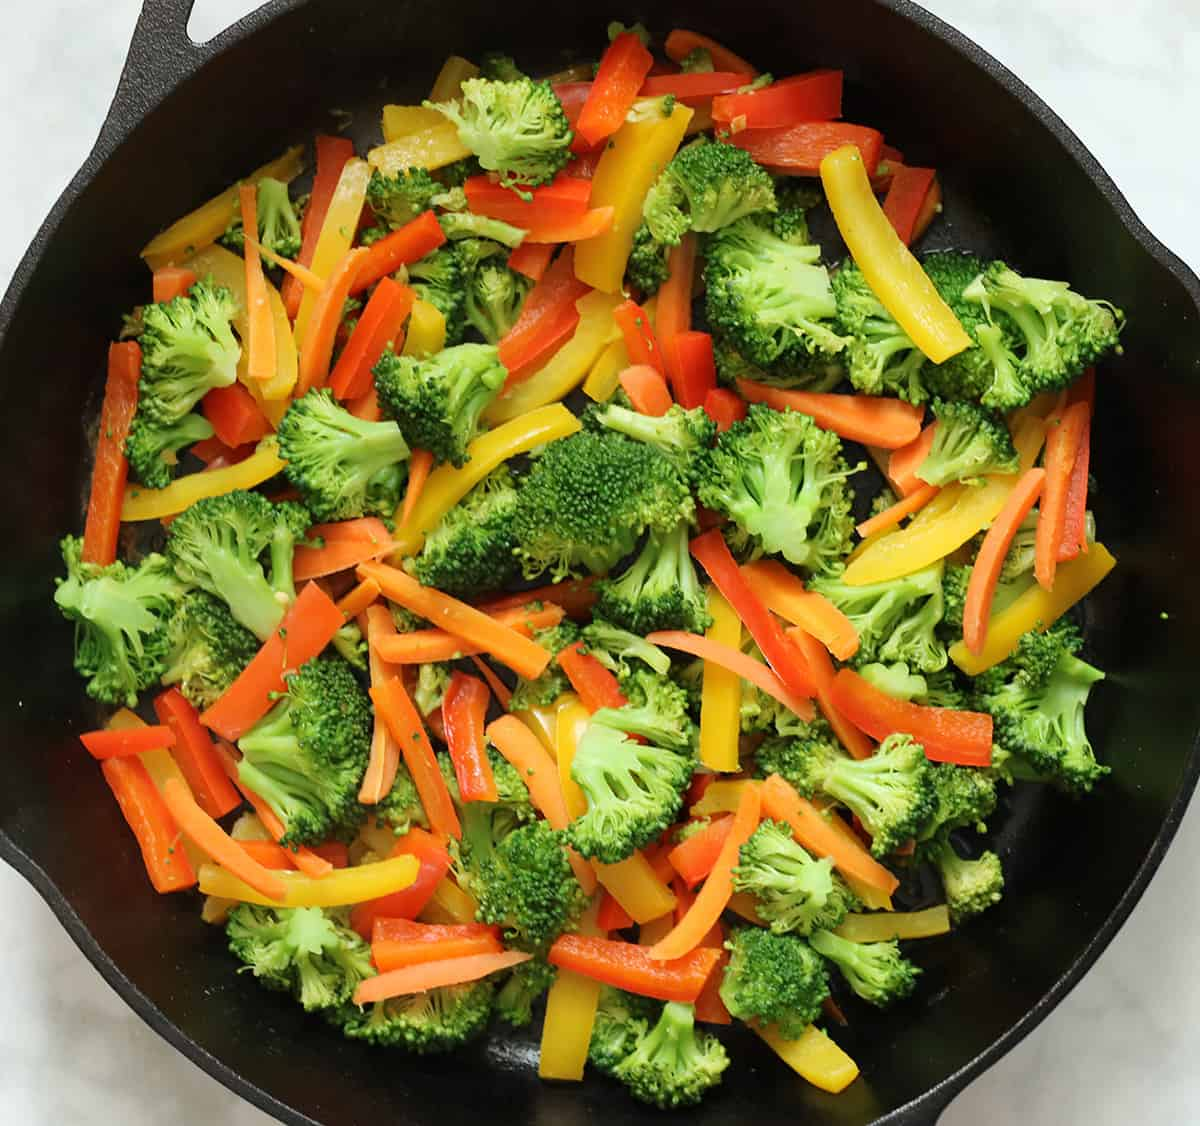 cooked broccoli, carrots, and peppers